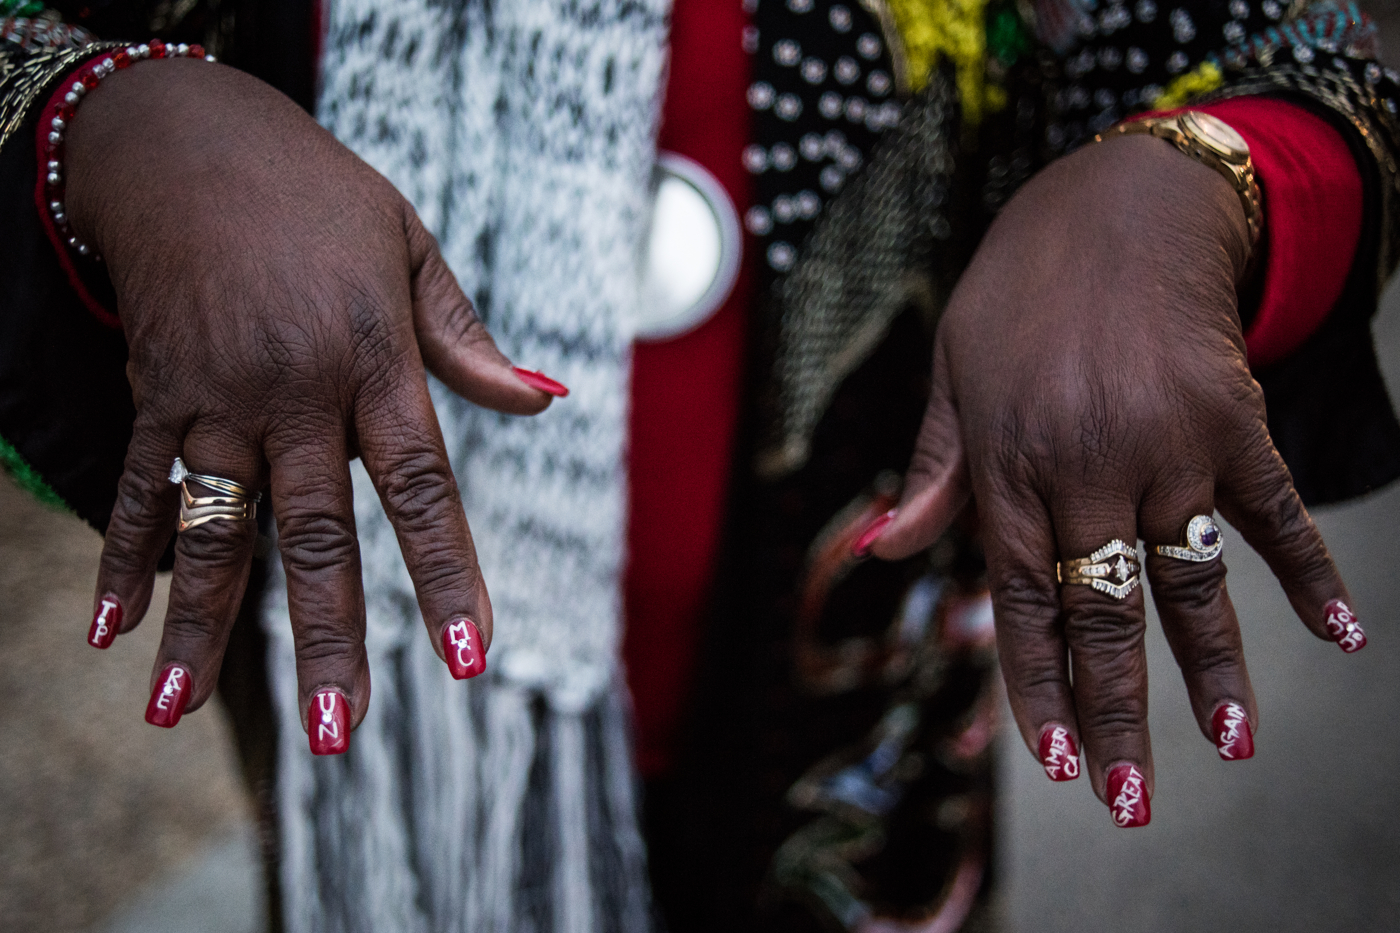 """Lucy Orlando, a supporter of then-President Elect Donald Trump shows off her painted nails that read """"TRUMP PENCE"""" and """"MAKE AMERICA GREAT AGAIN"""" before Trump's inauguration as the 45th President of the United States in Washington, D.C., on January 20, 2017. Credit: Mark Kauzlarich for CNN"""